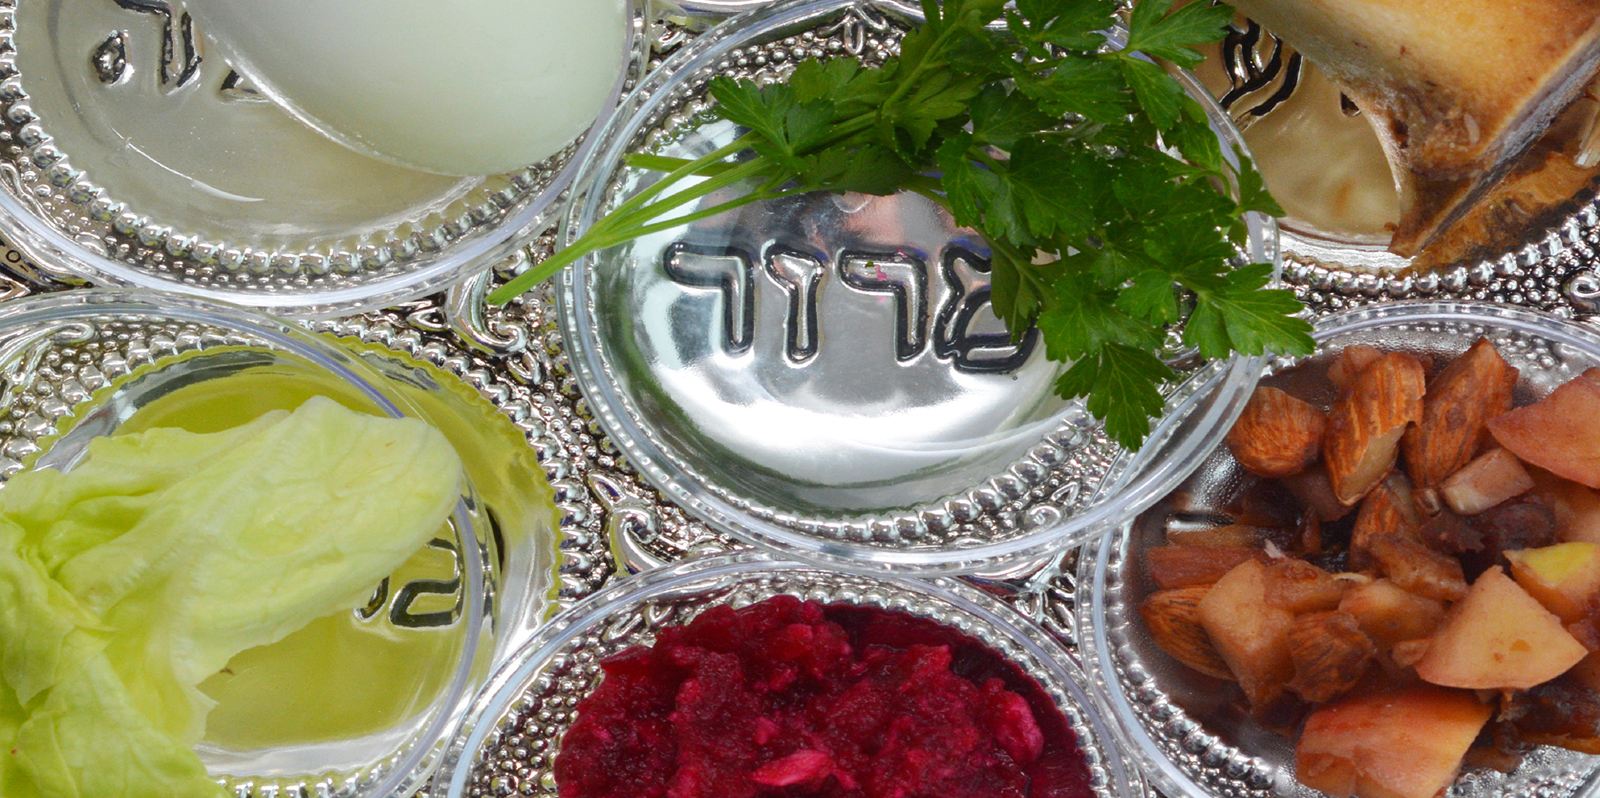 /home/templeis/public_html/images/header_image/1459280512header_imageLP_IW_passover.jpg.